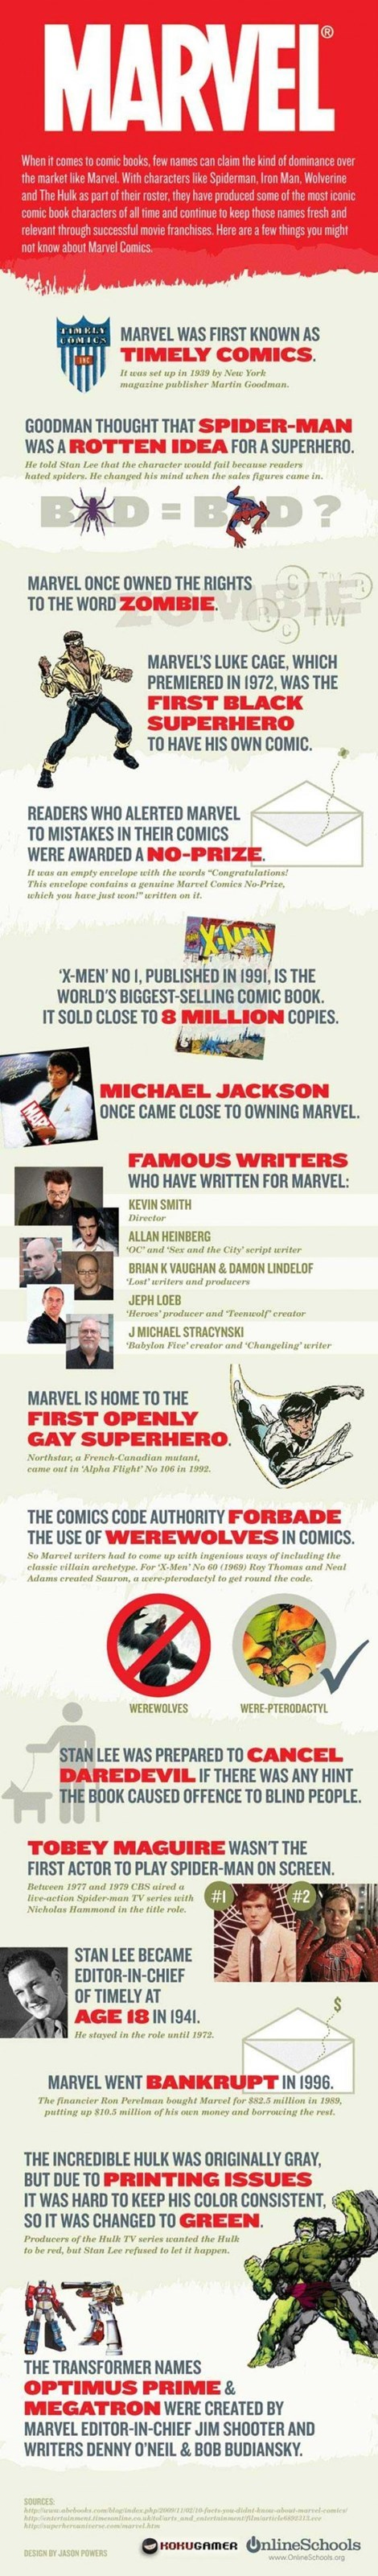 marvel history infographic - 8422505984